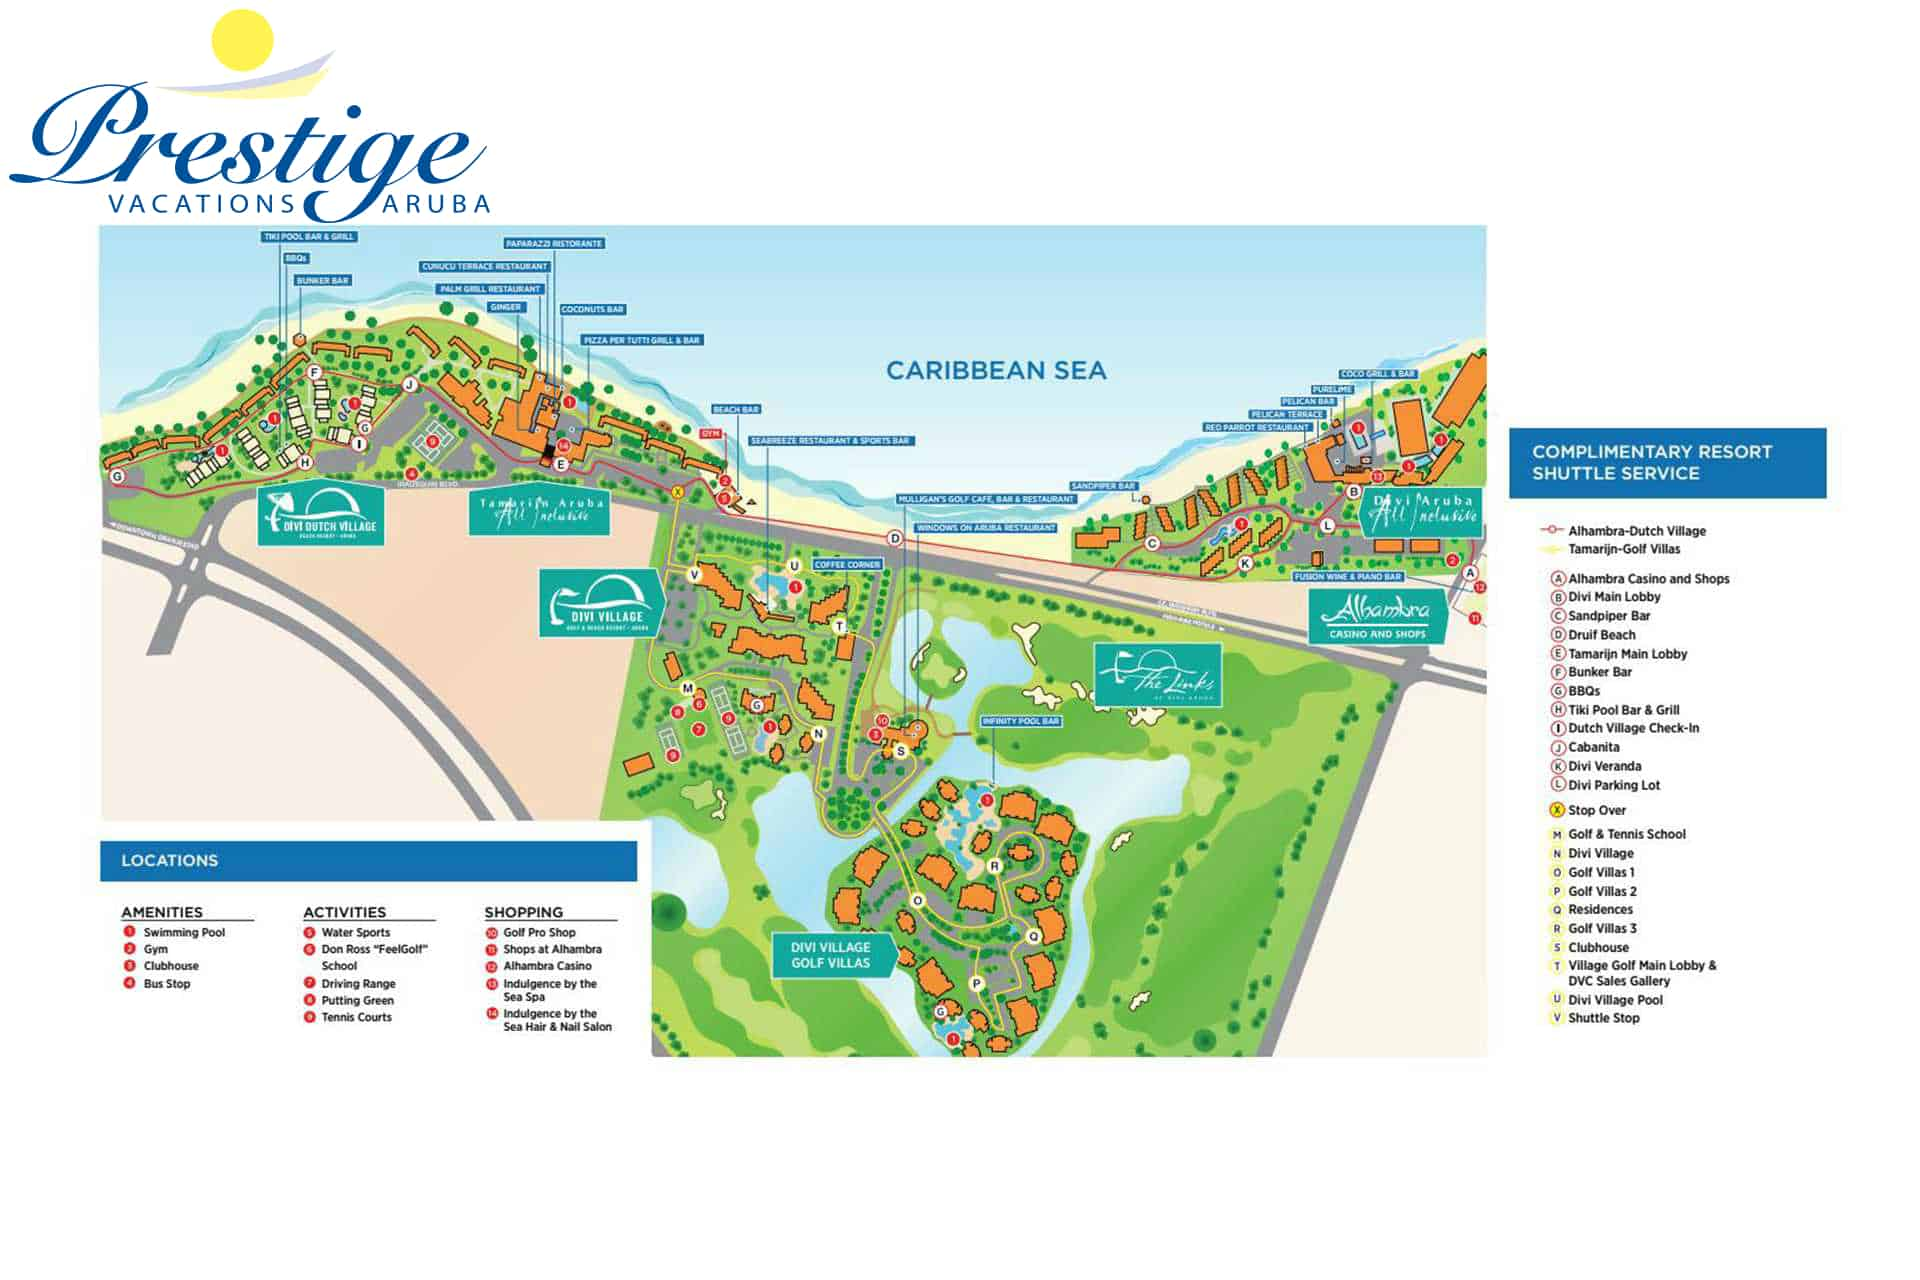 A complete map of the Divi Village Golf & Beach Resort